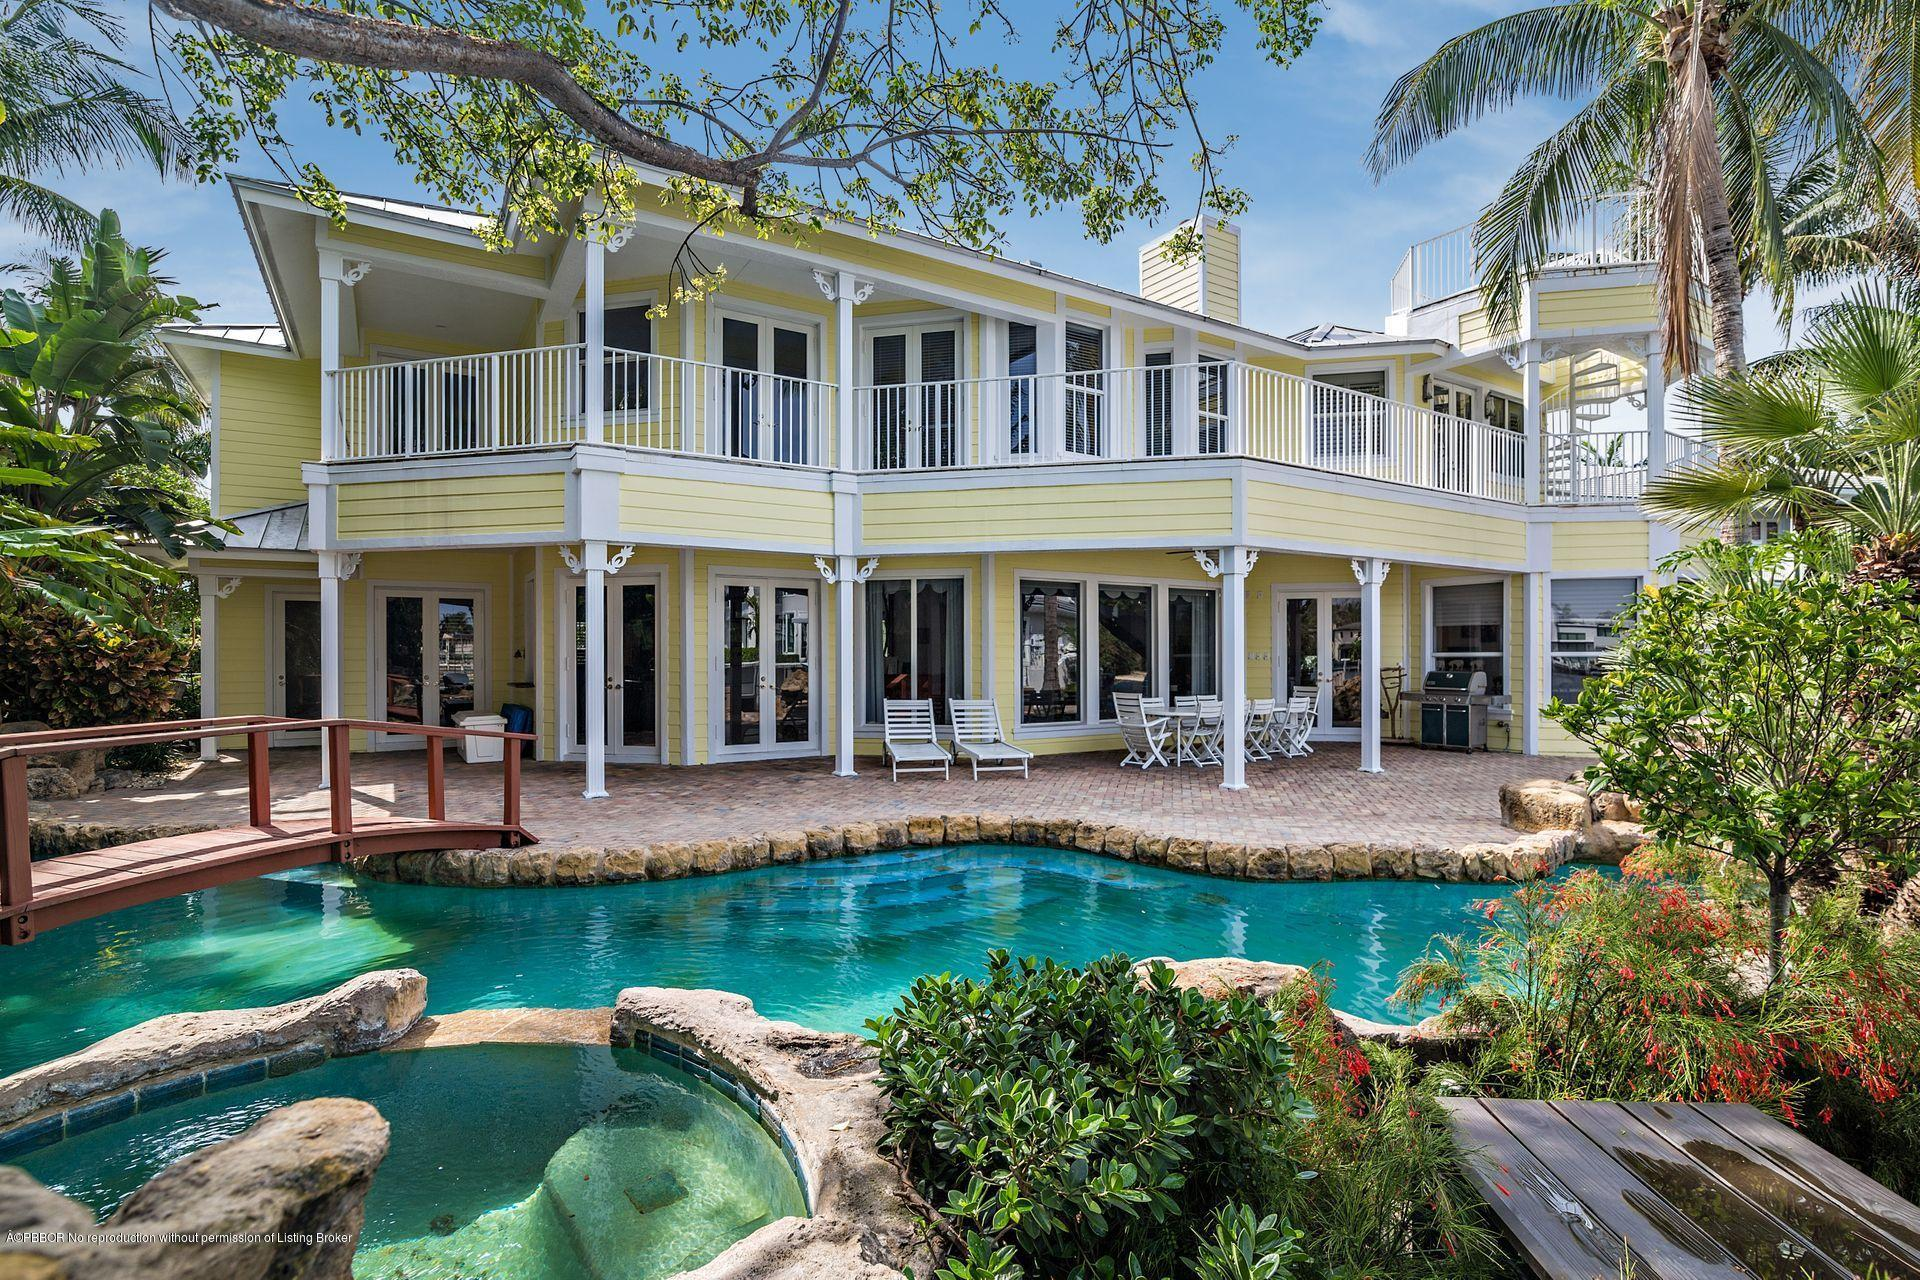 1121 Marble Way - Boca Raton, Florida